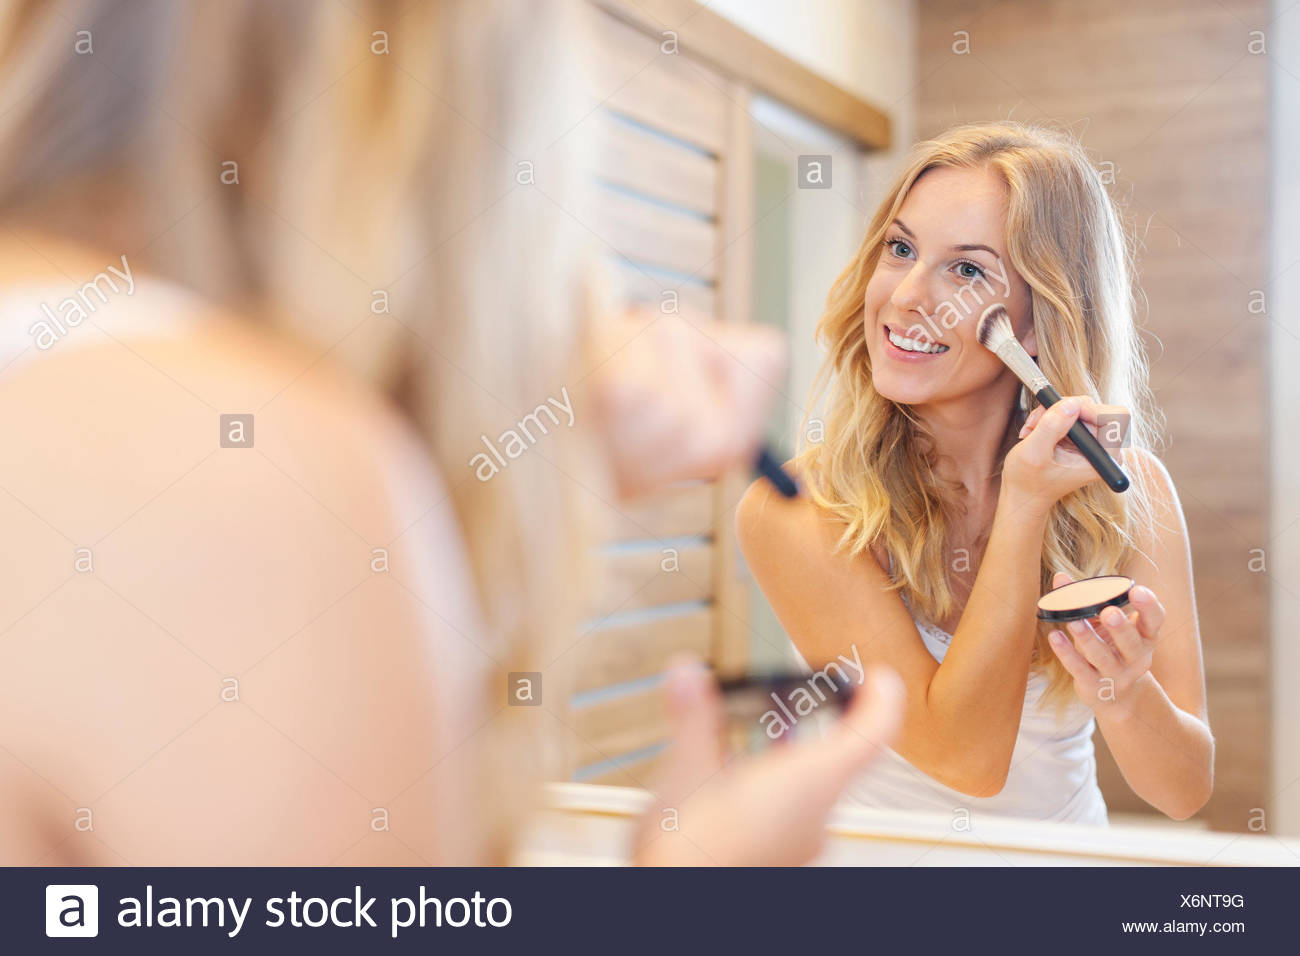 Blonde beautiful woman doing makeup in front of mirror. Debica, Poland - Stock Image